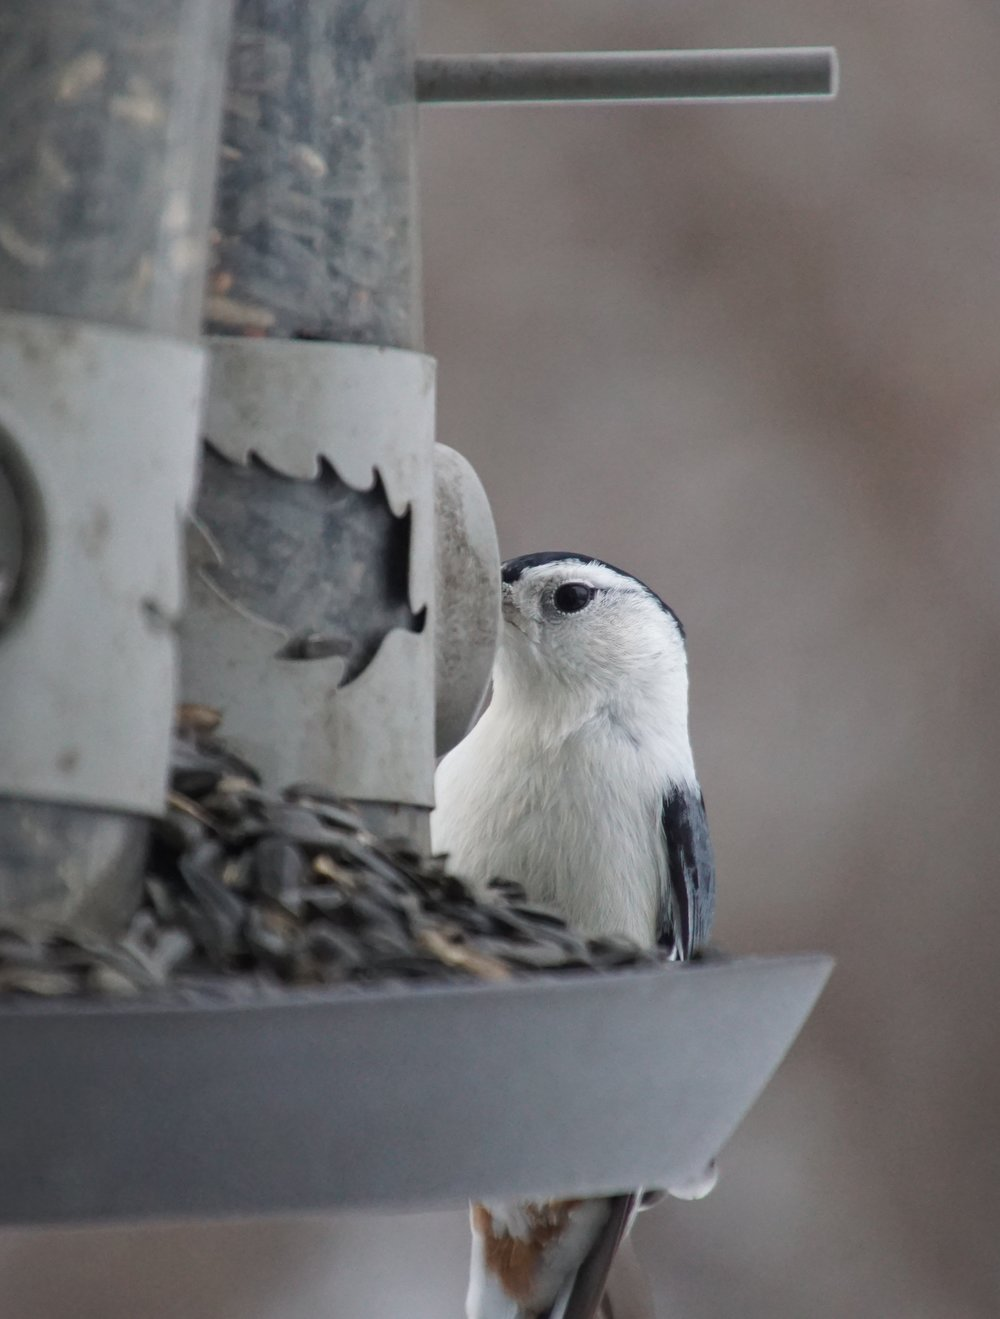 A nuthatch notices things like me.